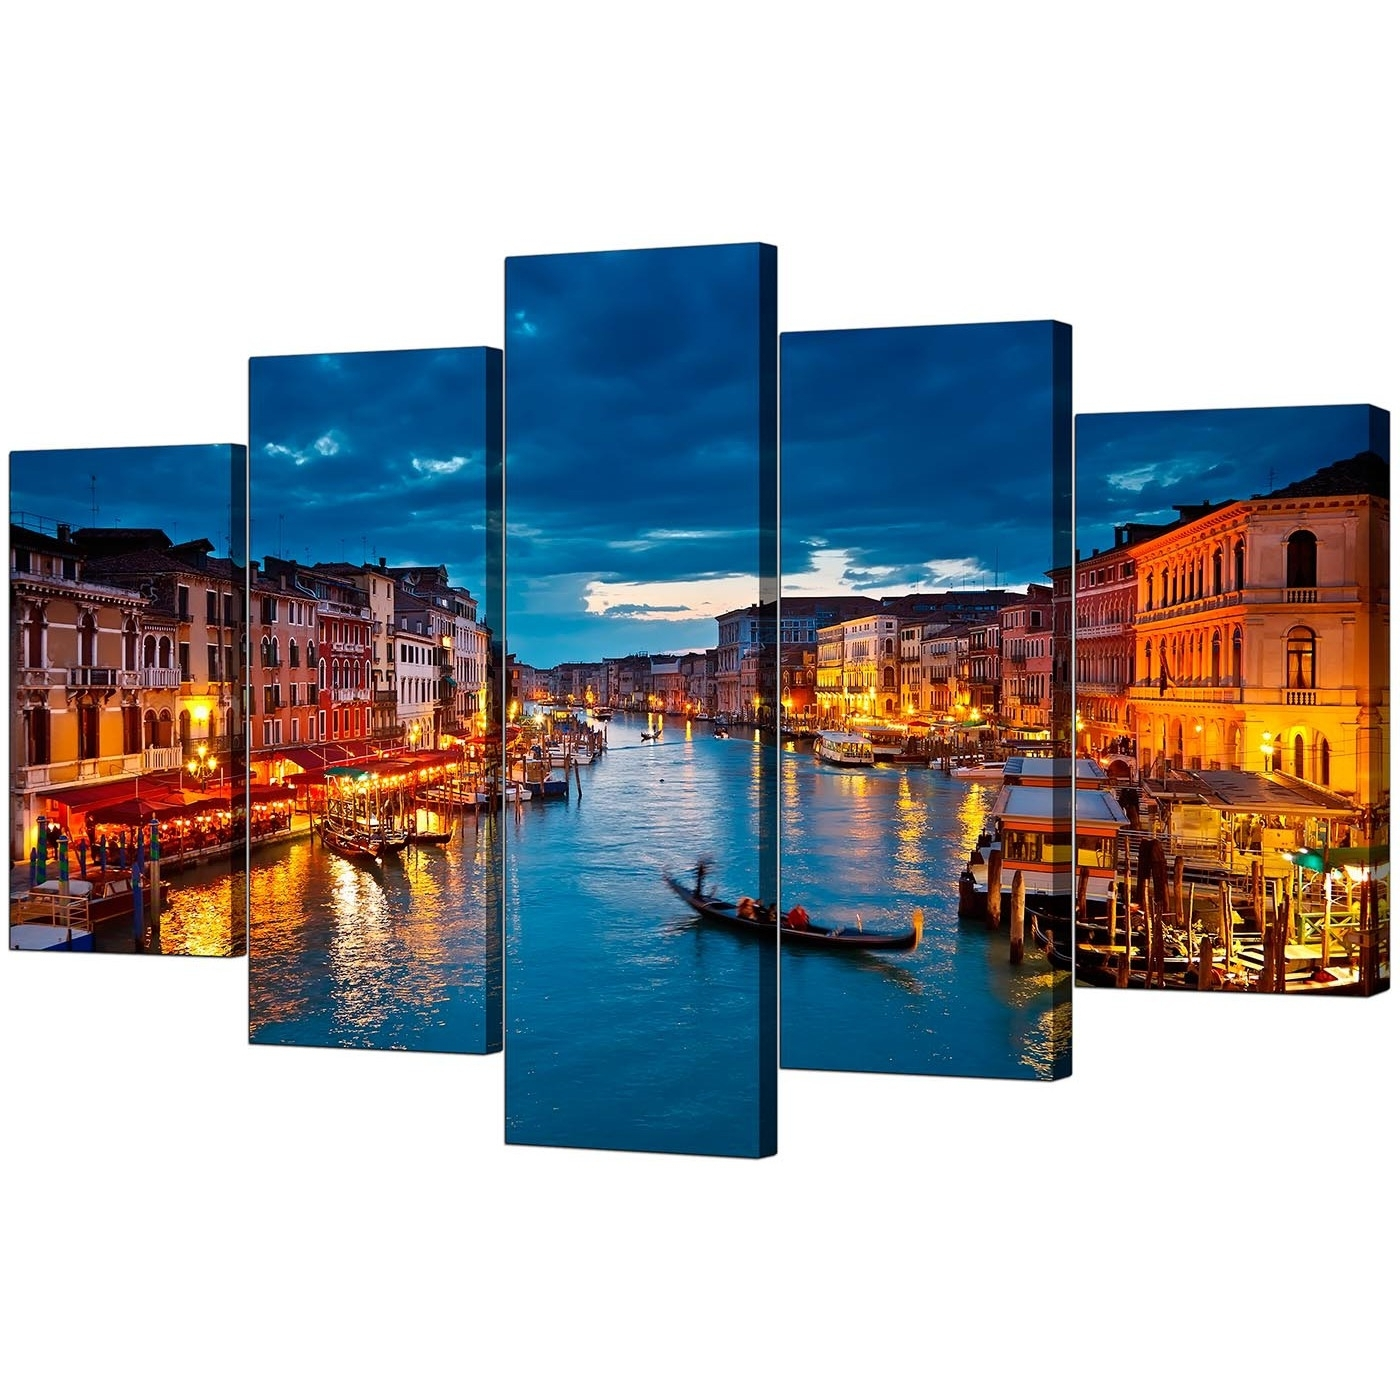 Italy Canvas Wall Art Inside Well Known Venice Italy Canvas Prints For Your Living Room – 5 Panel (View 10 of 15)